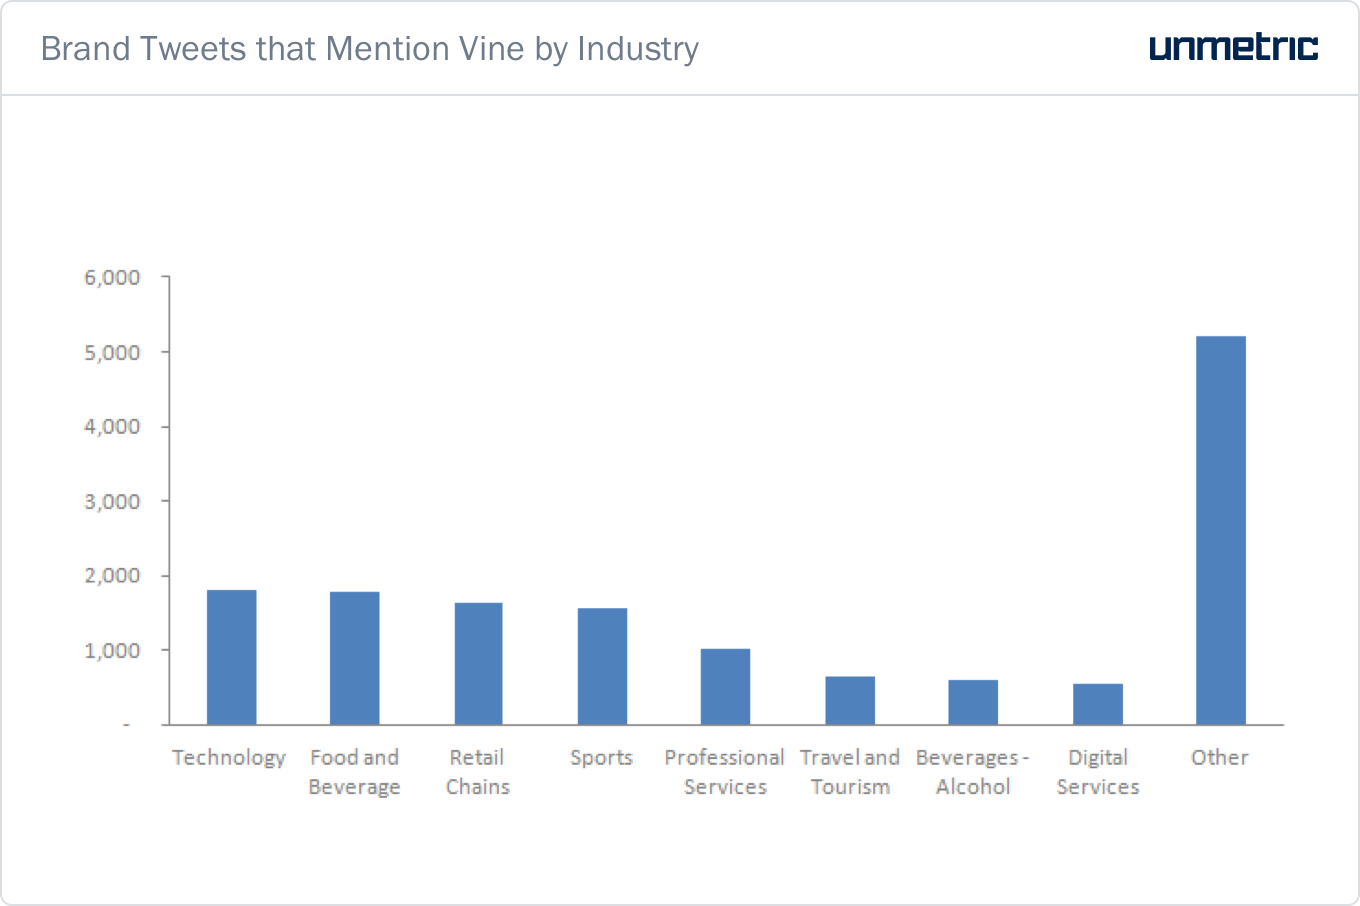 Brand-Tweets-that-Mention-Vine-by-Industry.png